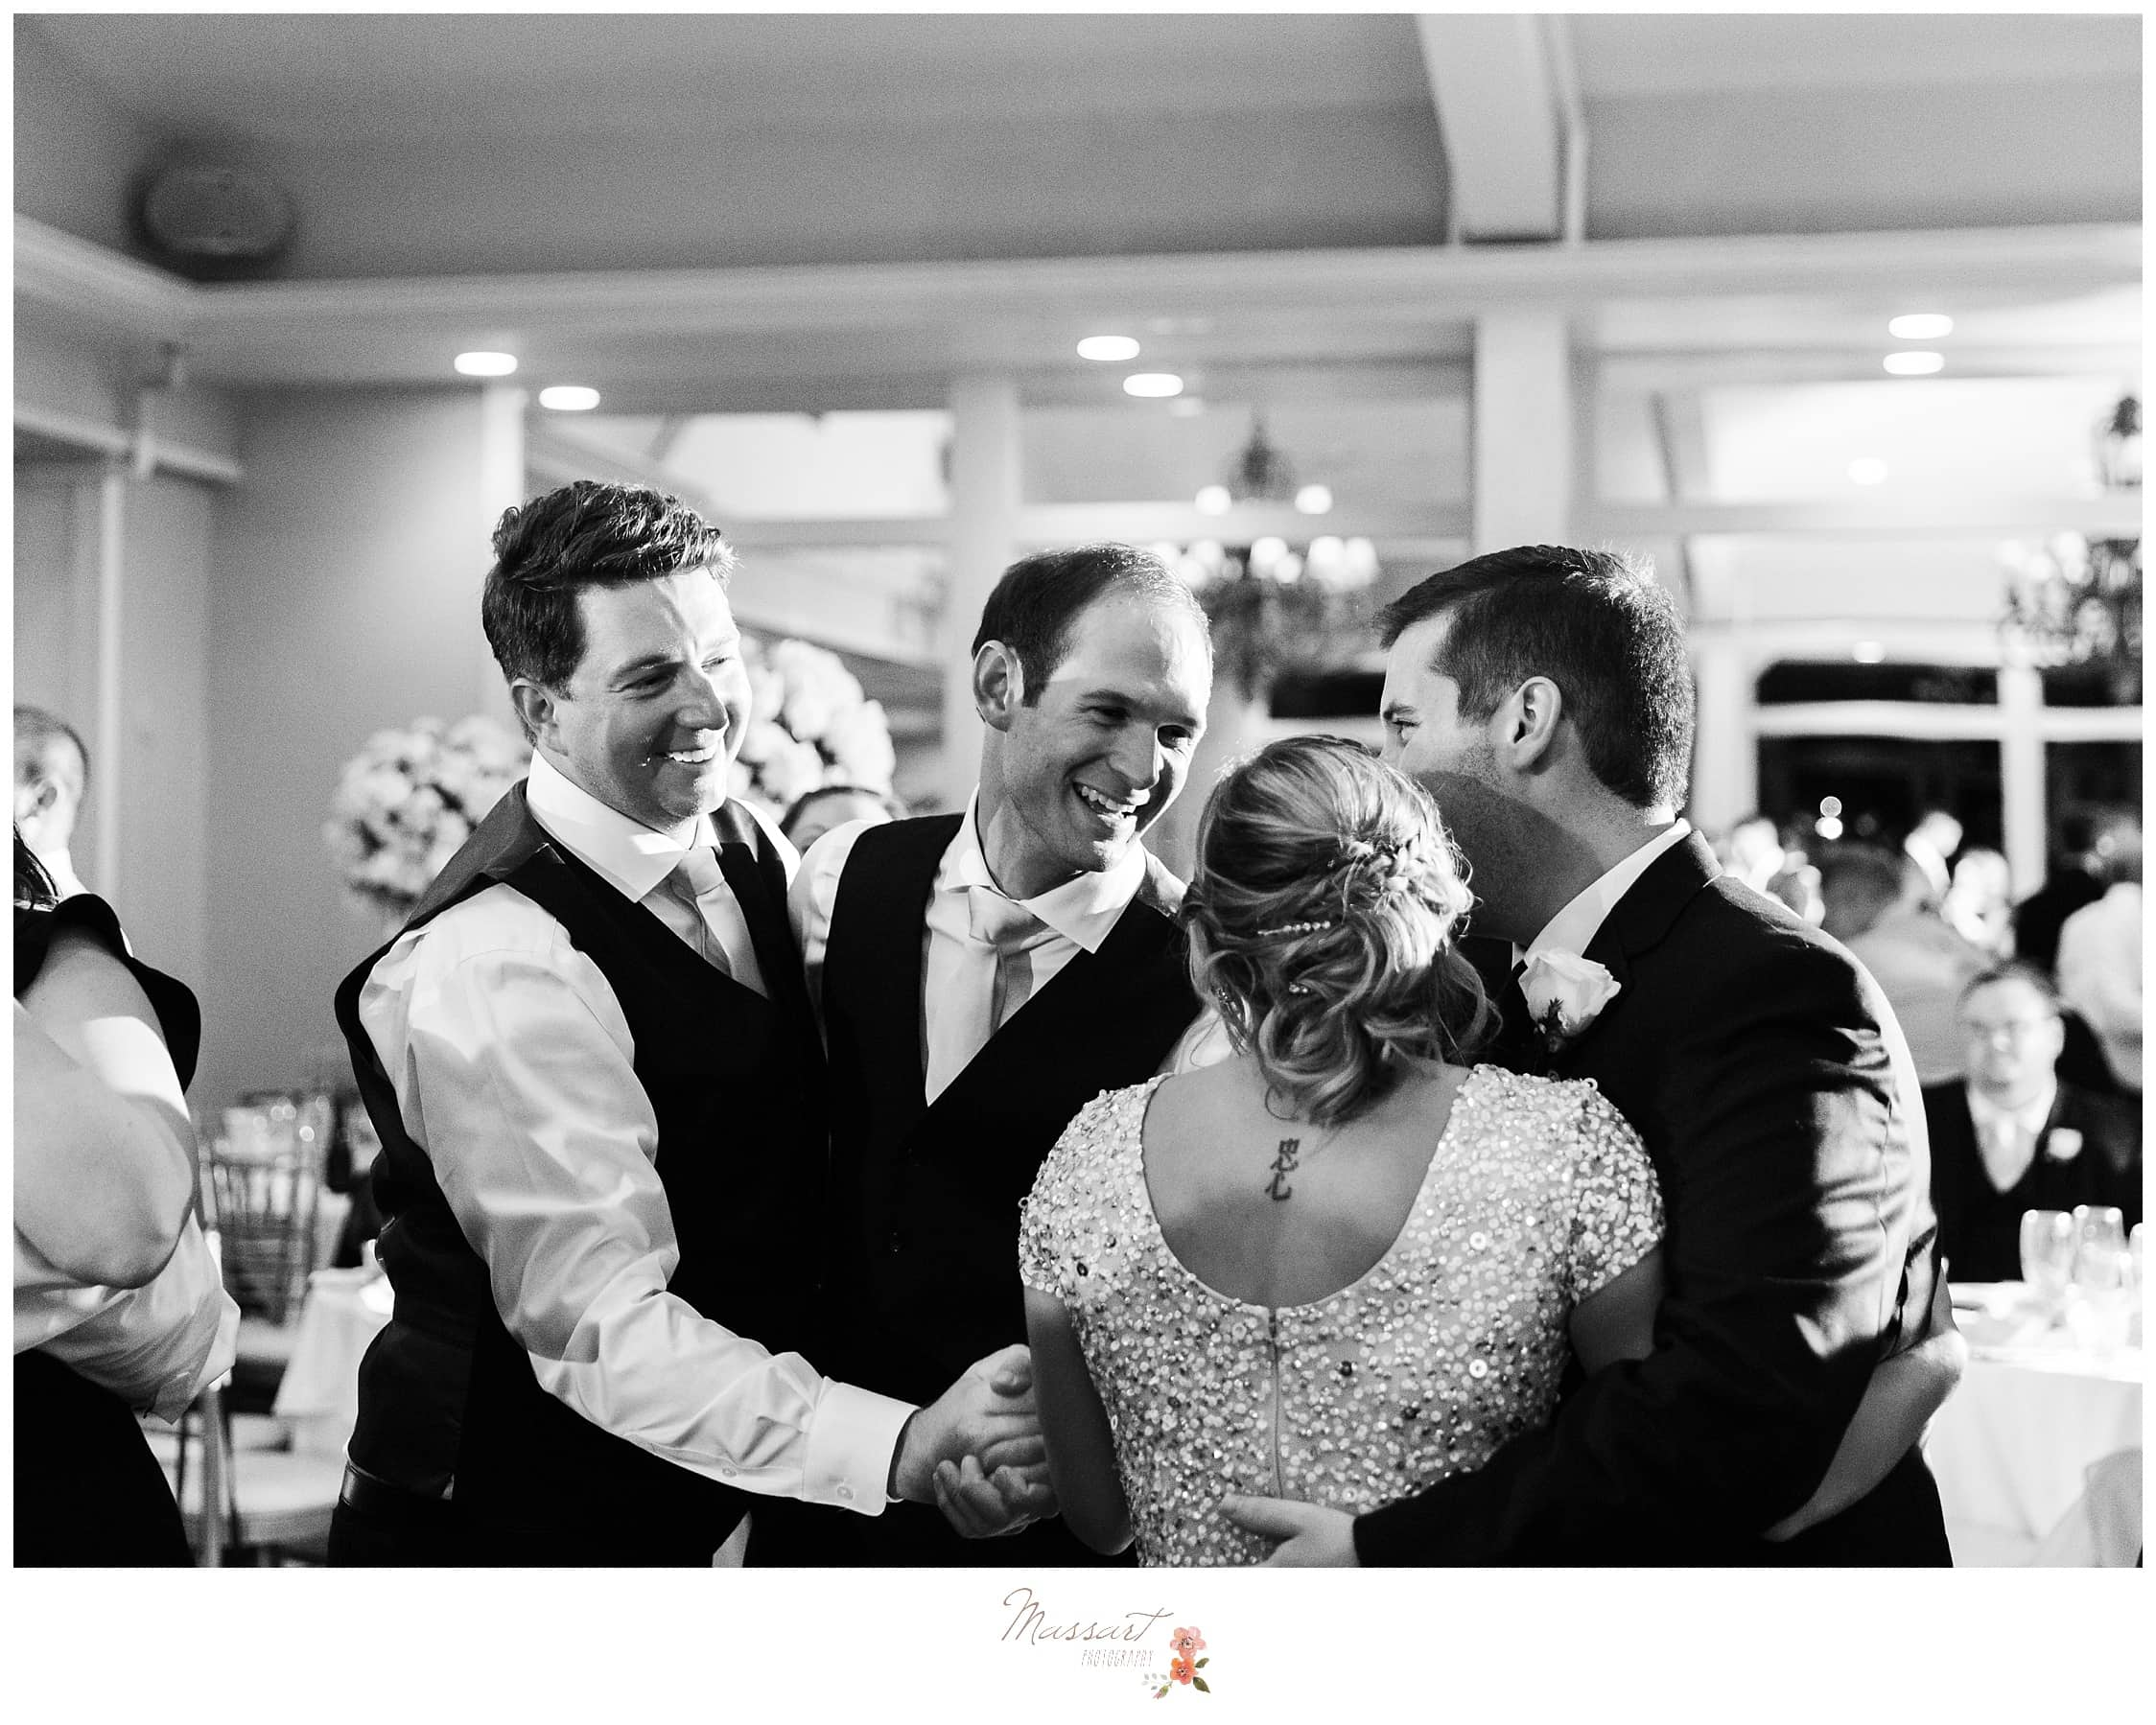 Bridesmaids and groomsmen dance along with the bride and groom photographed by Massart Photography Rhode Island